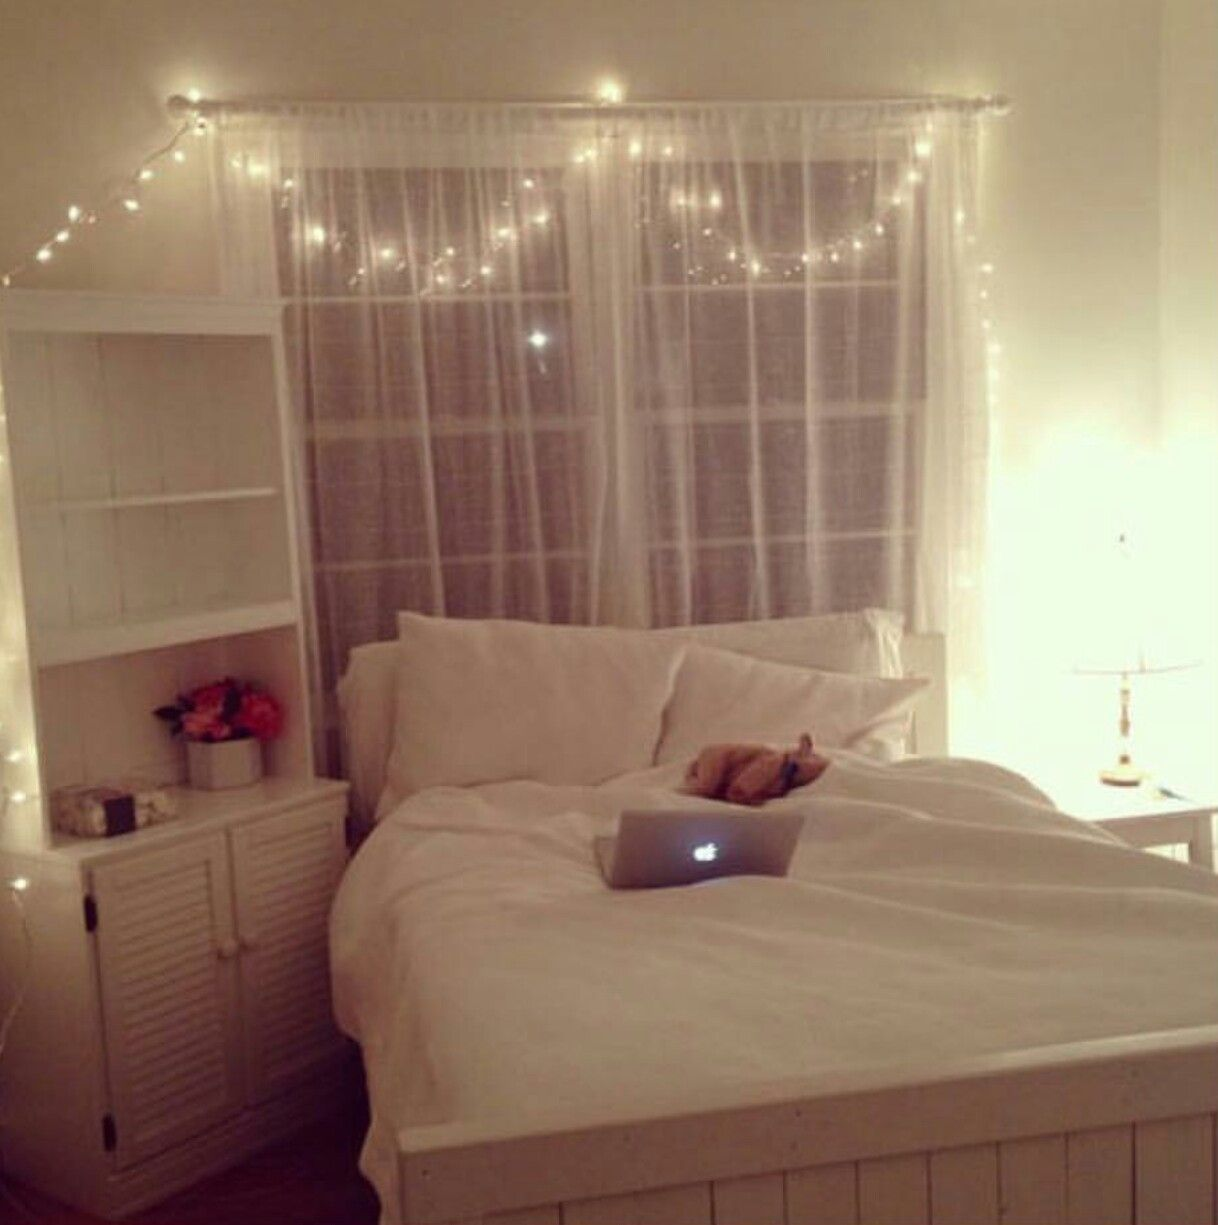 Fairy lights bedroom tumblr - Pretty Fairy Lights Bedroom Bedroom Decoration Trends With Fairy Light Come Back In Varied Designs And Designs You Ll Decide One In All The Best Styles